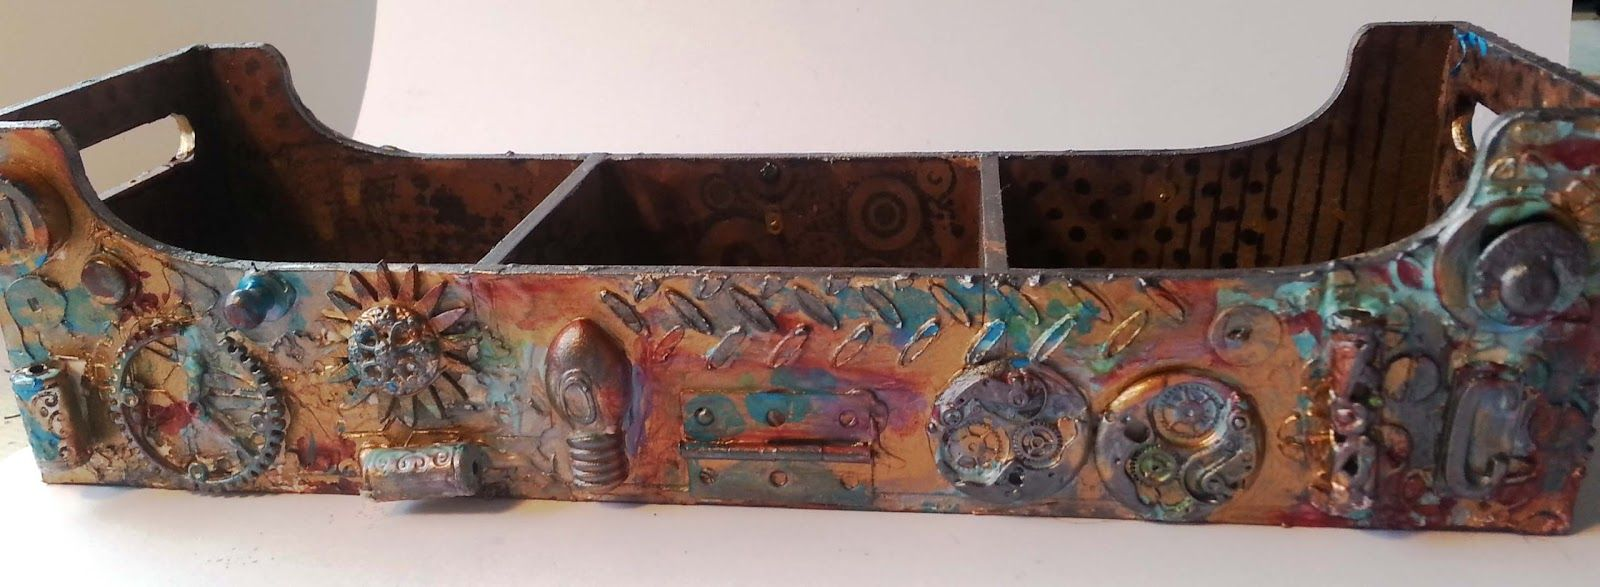 ATC Box by Moira Sutton | That's Blogging Crafty!